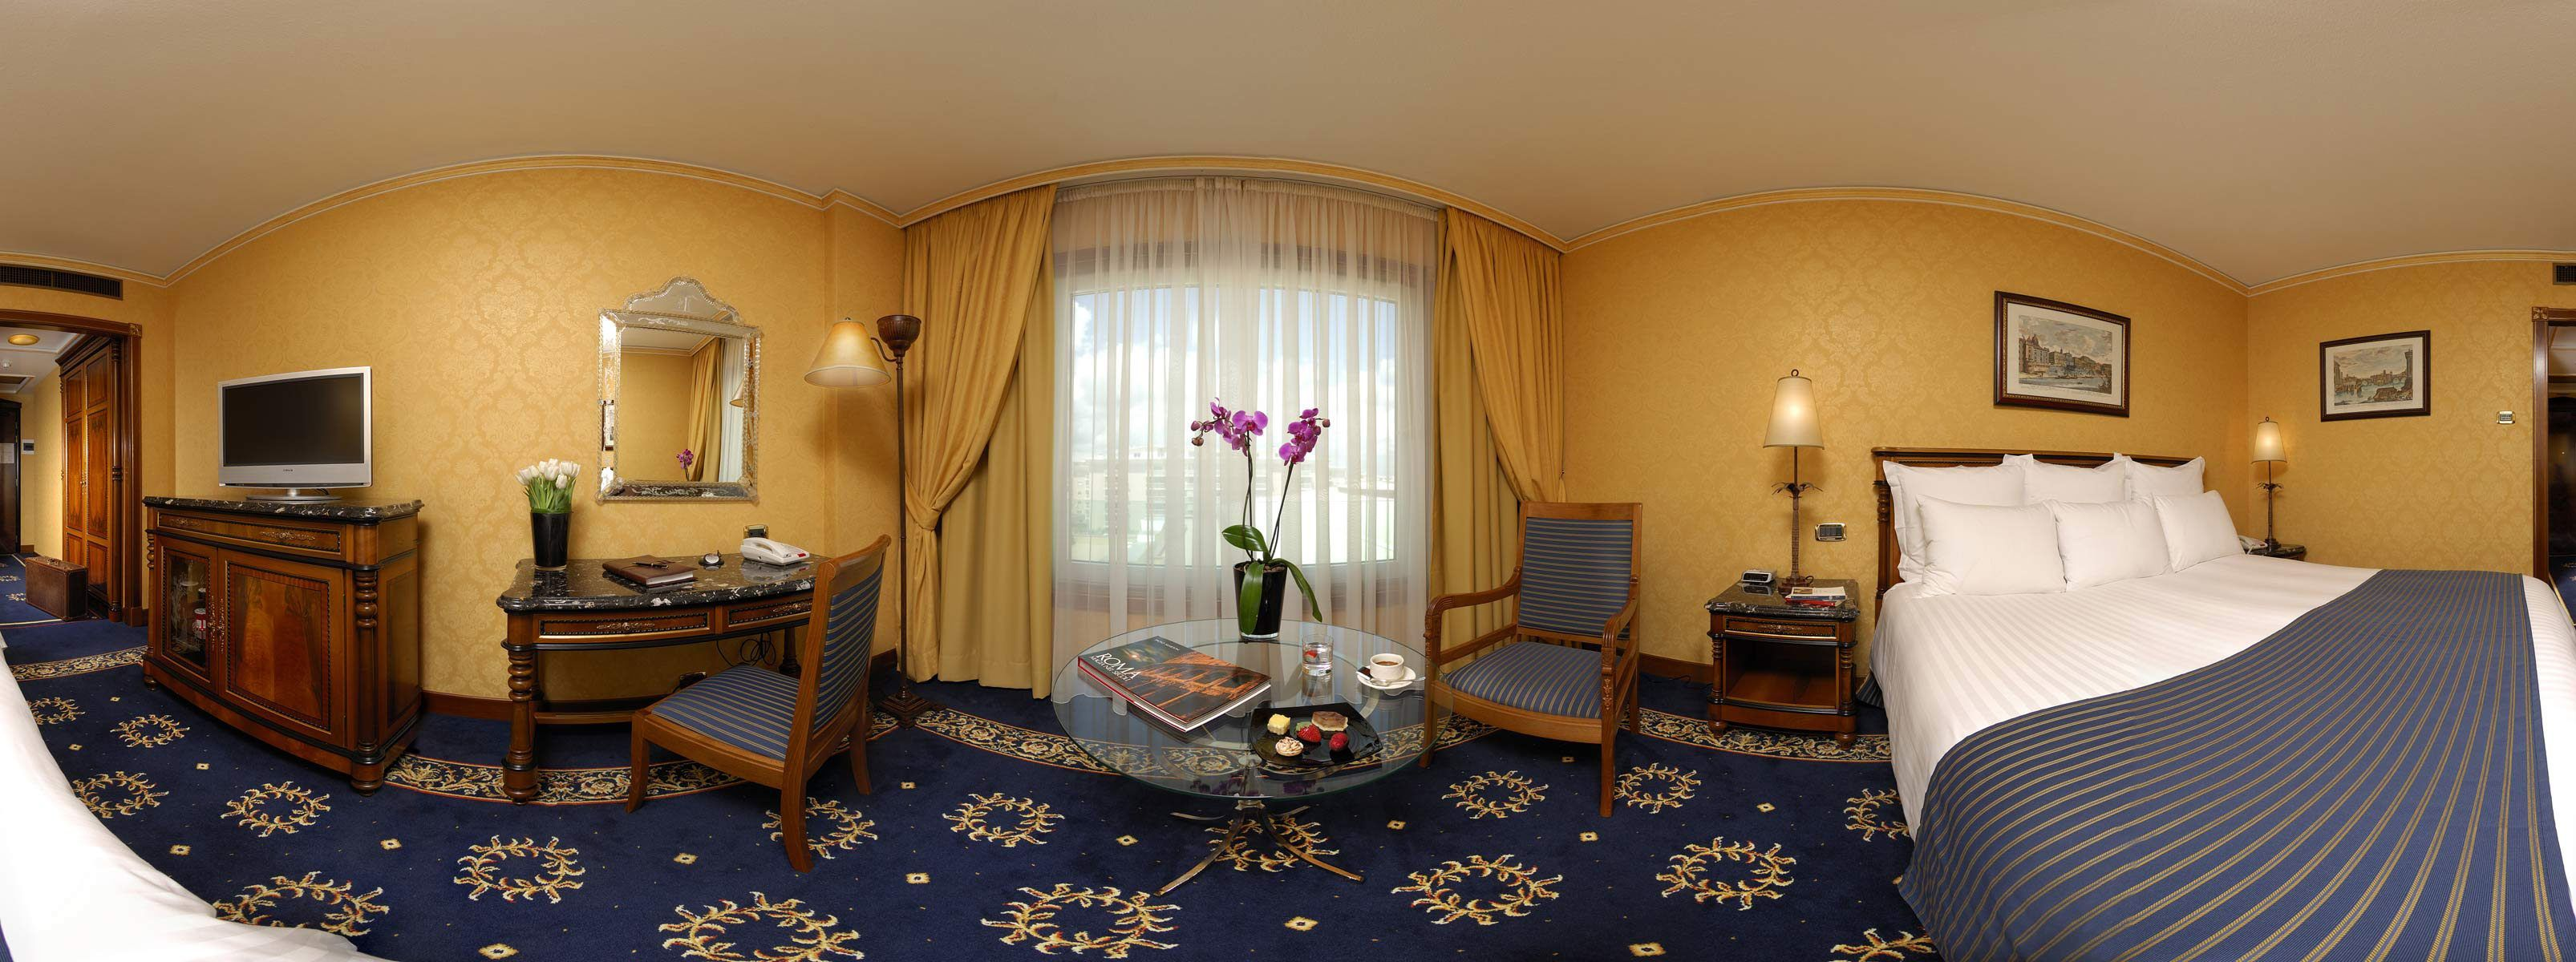 Rome Marriott Park Hotel Deluxe Room #comfortable, # ...